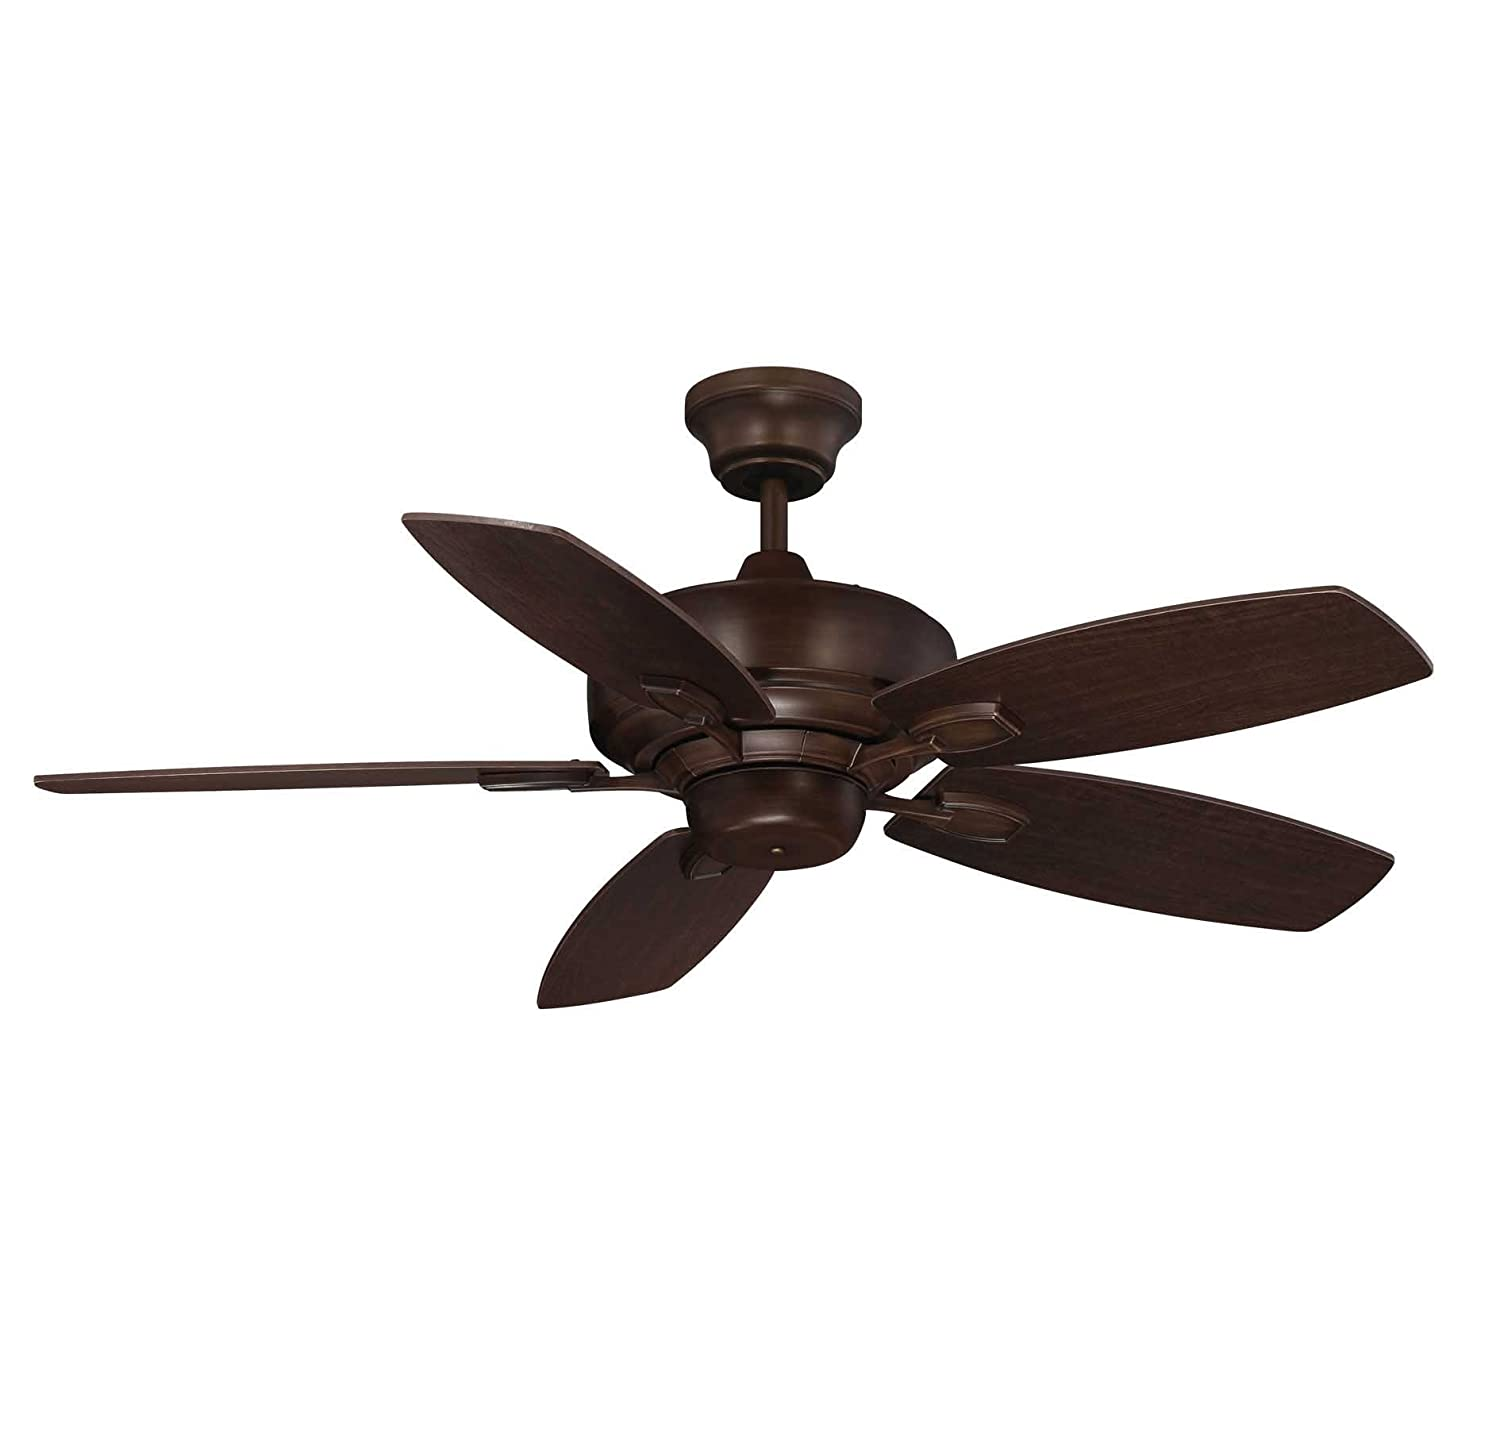 "Savoy House 42 830 5RV 129 Wind Star Ceiling Fan 42"" Espresso"